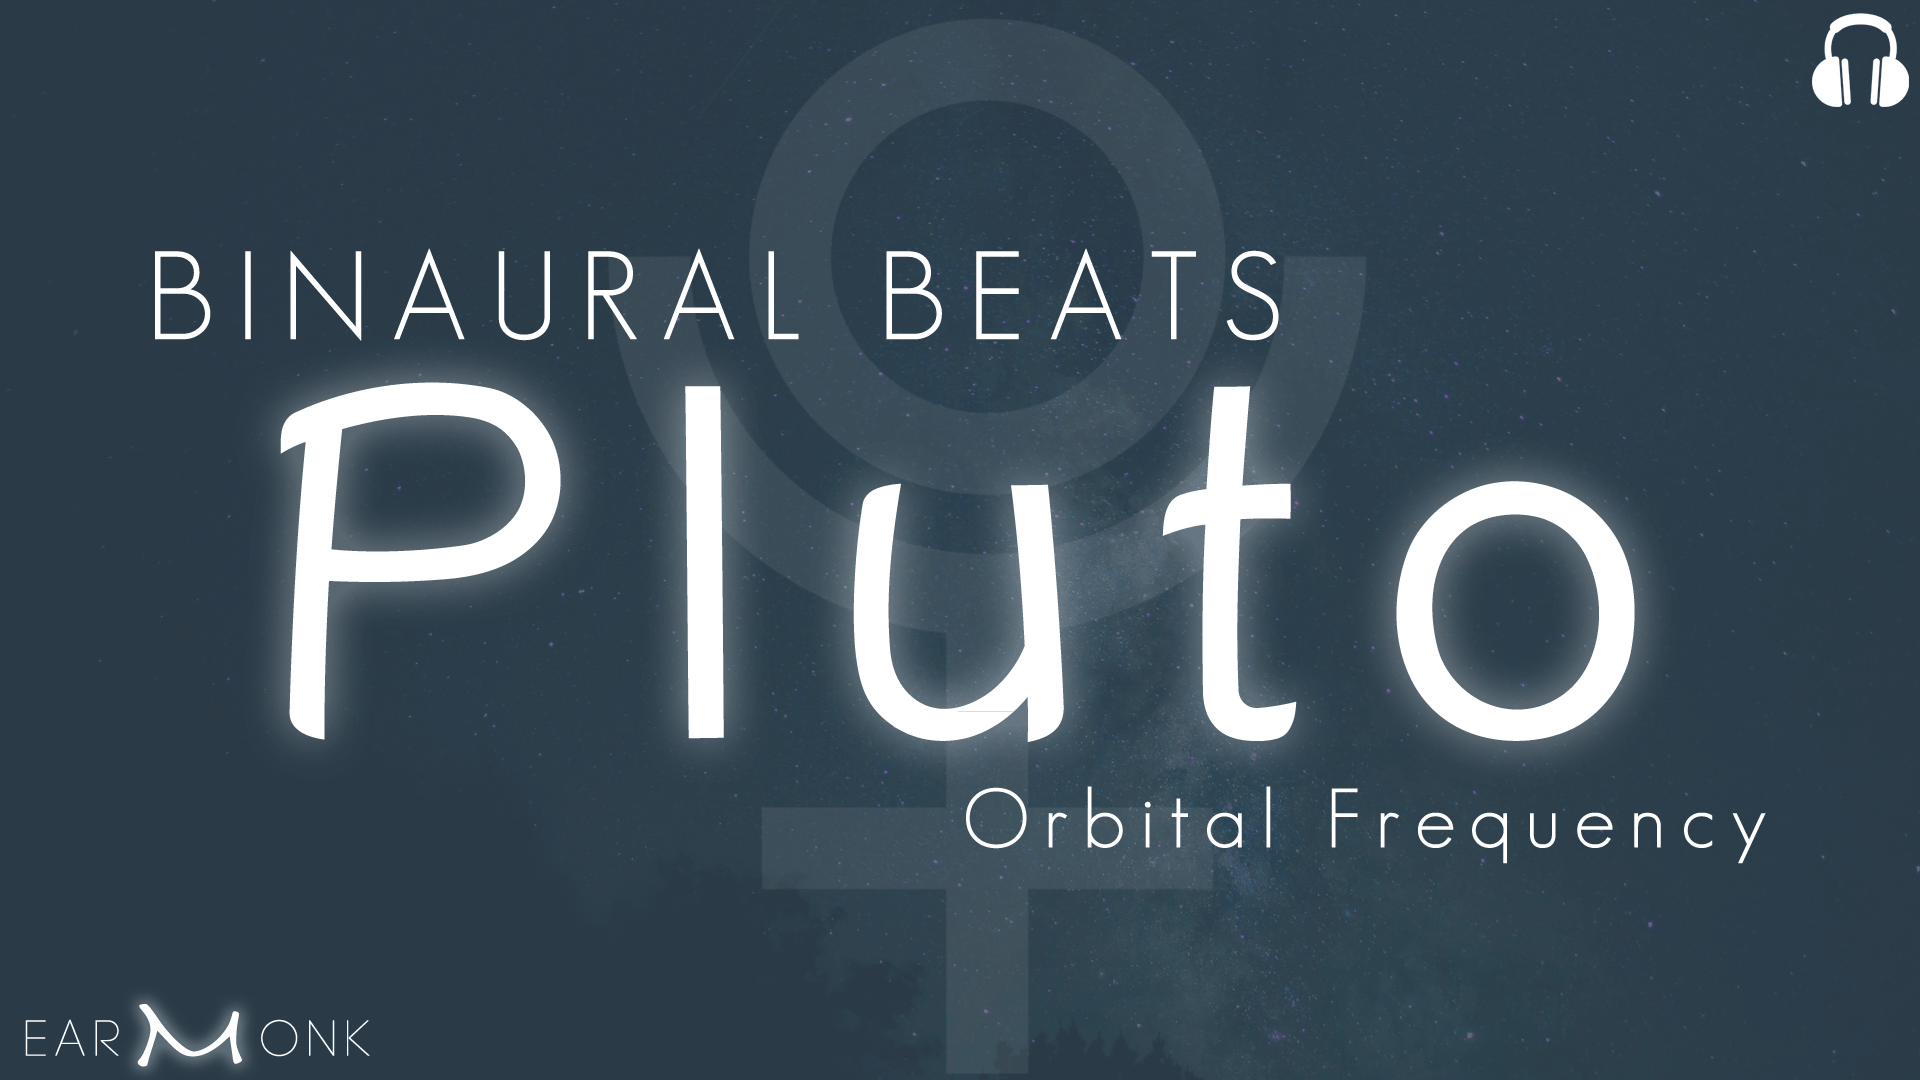 beta binaural beats pluto frequency